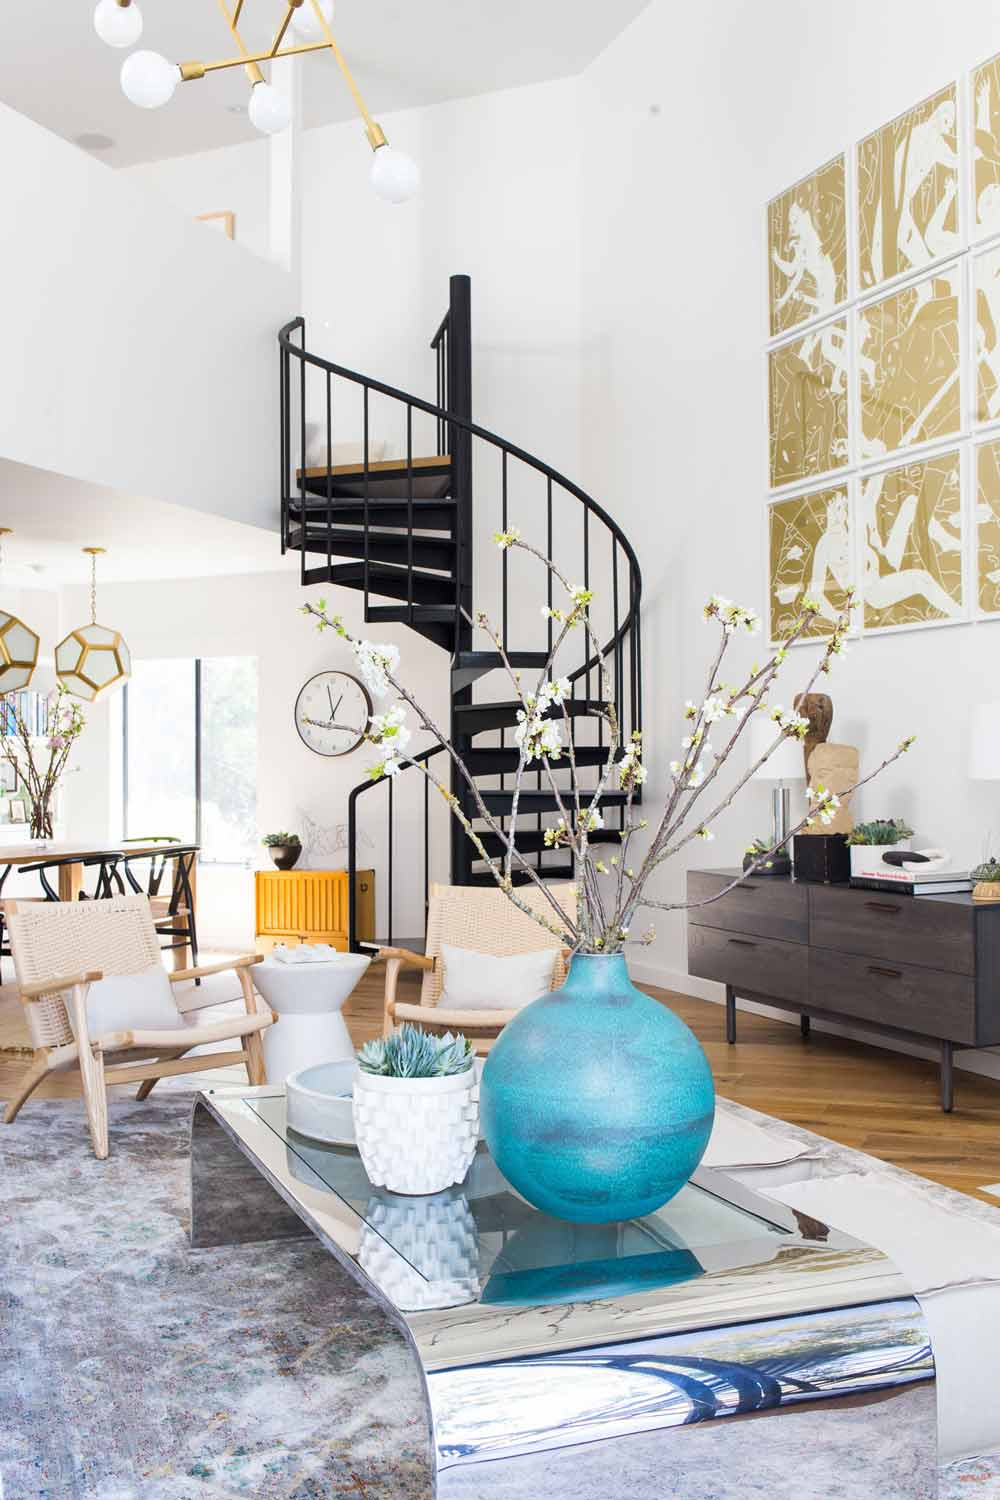 Charming Before U0026 After: Designer Orlando Soria Renovates His Very Own